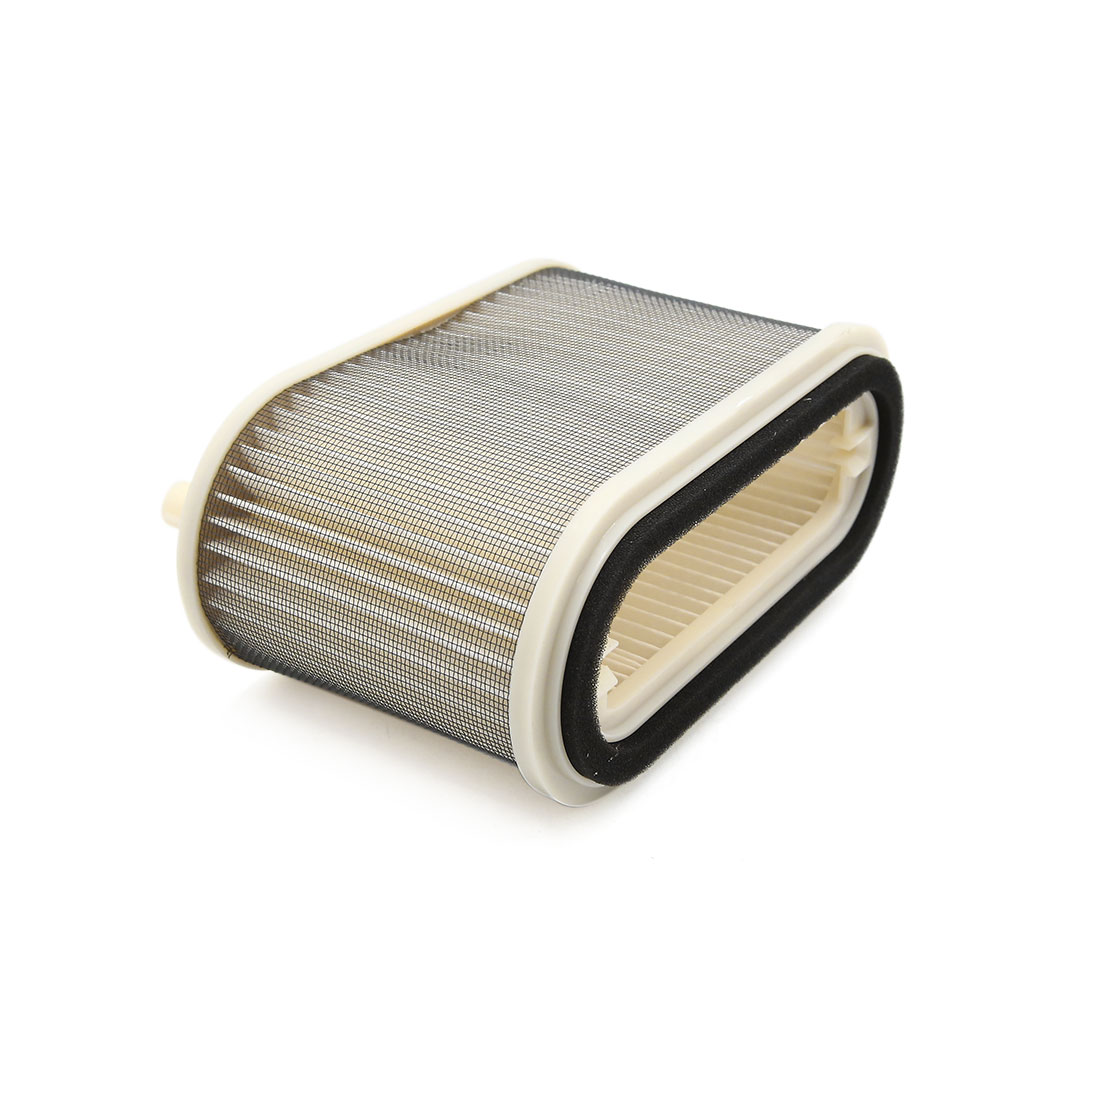 White Scooter Motorcycle Engine Air Intake Filter Replacement for Yamaha - image 1 de 3